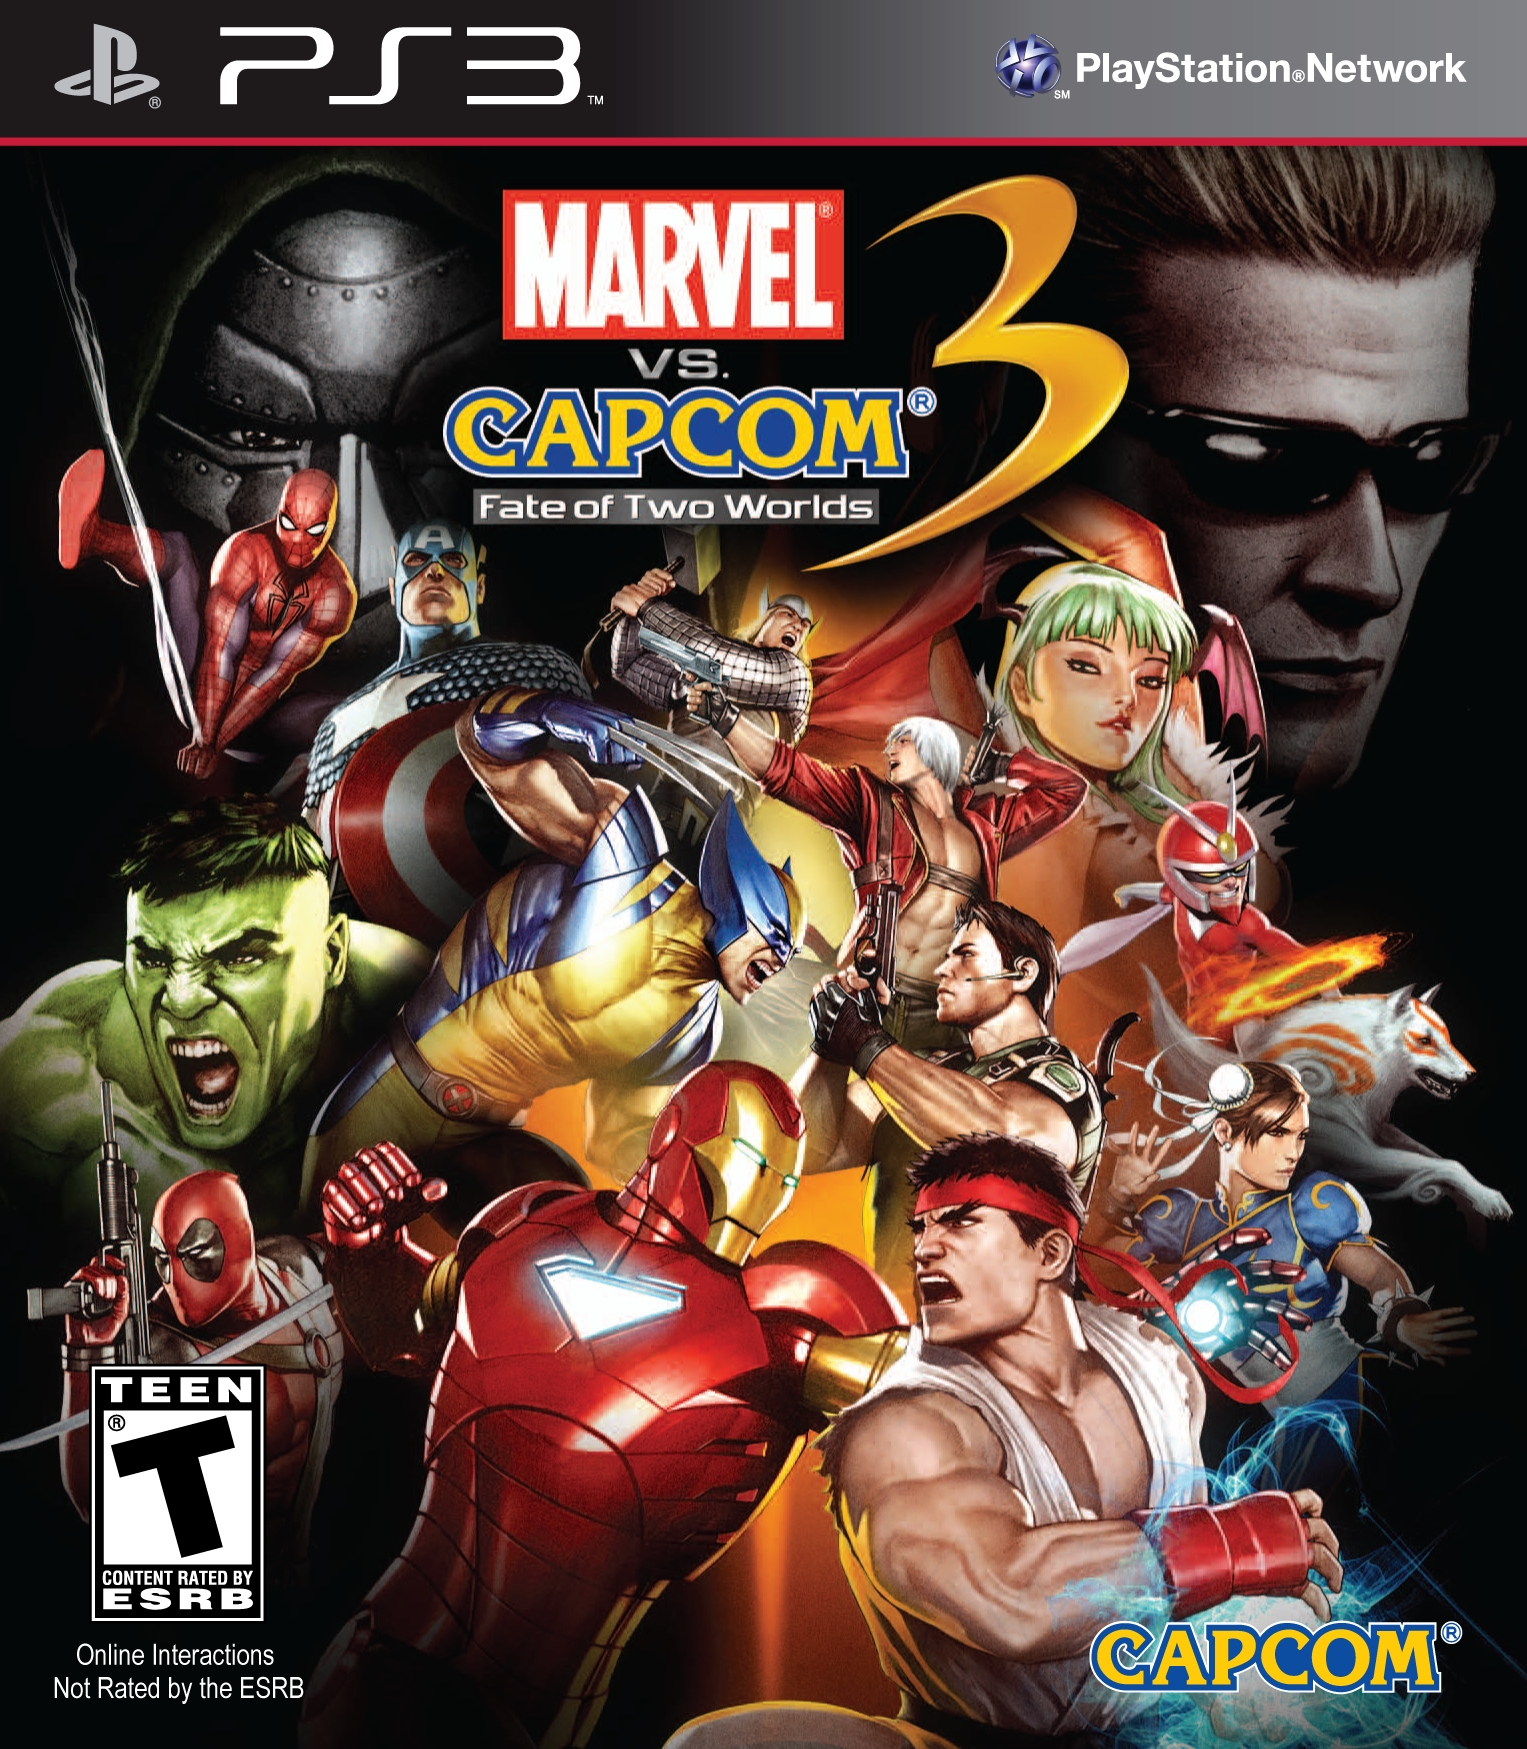 marvel vs capcom 3 walkthrough video guide xbox 360 ps3 rh videogamesblogger com Skyrim Dawnguard Walkthrough Exorcist 2 Walkthrough Guide